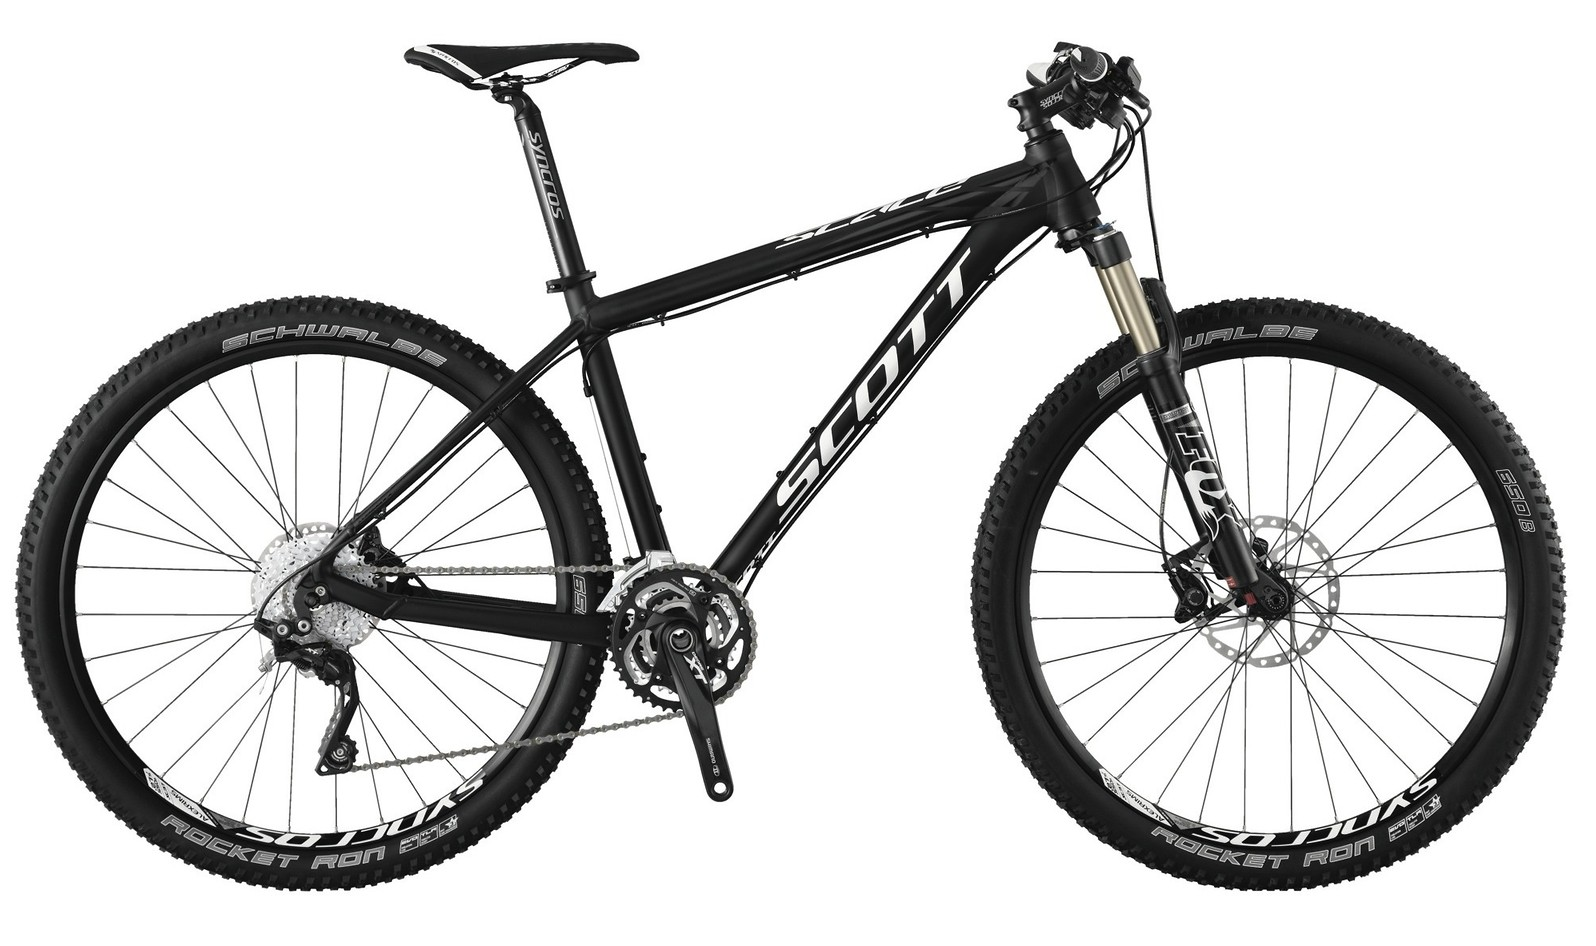 2013 Scott Scale 740 Bike bike - Scott Scale 740